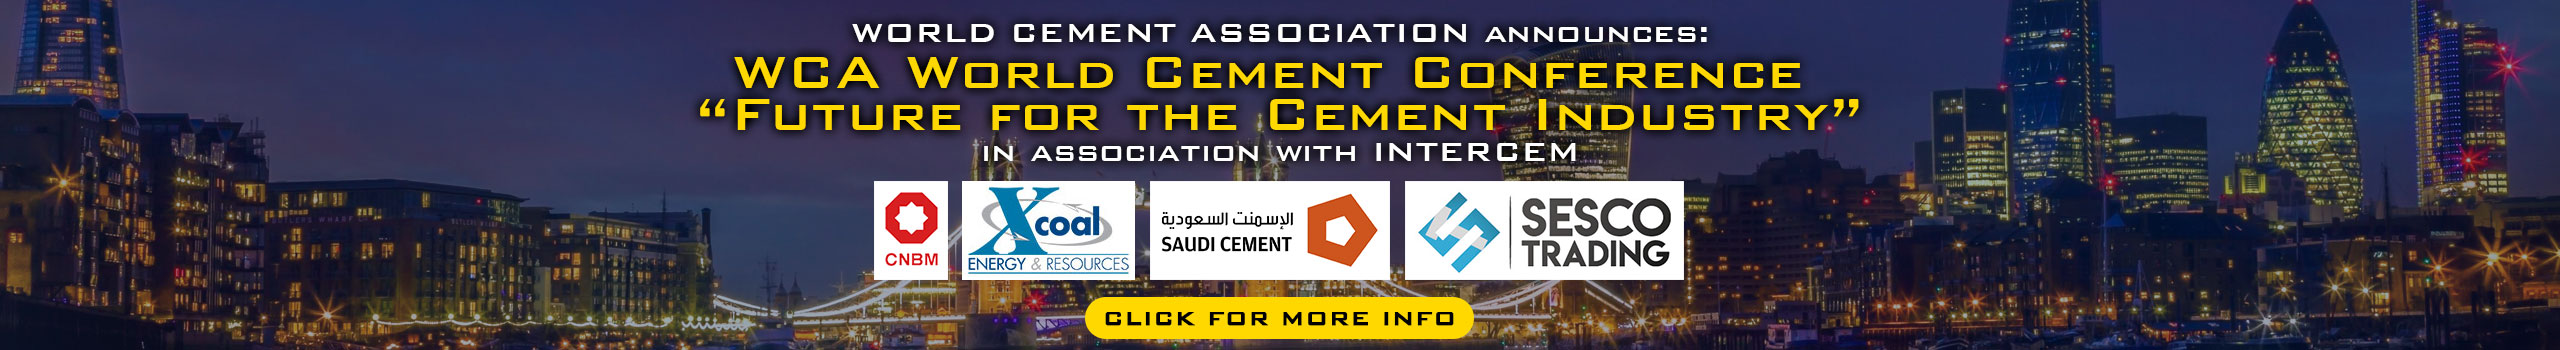 wca-general-assembly-and-conference-2018-c